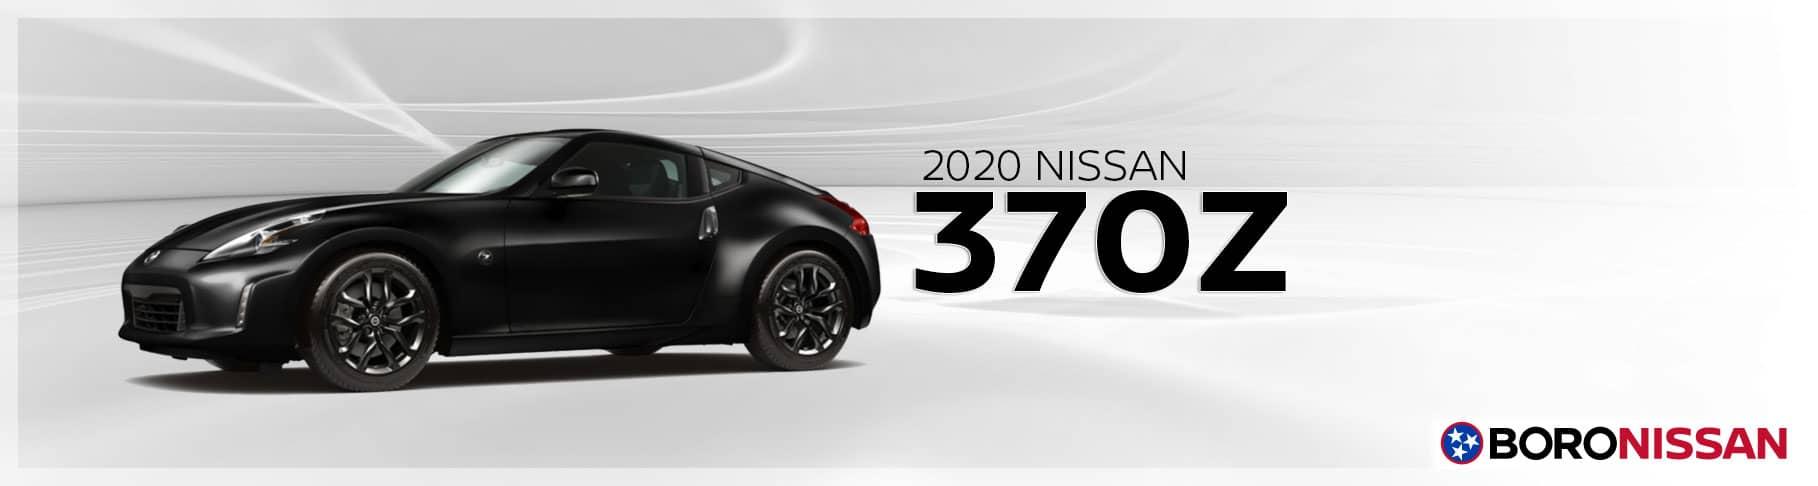 The New 2020 Nissan 370Z For Sale In Murfreesboro Nissan